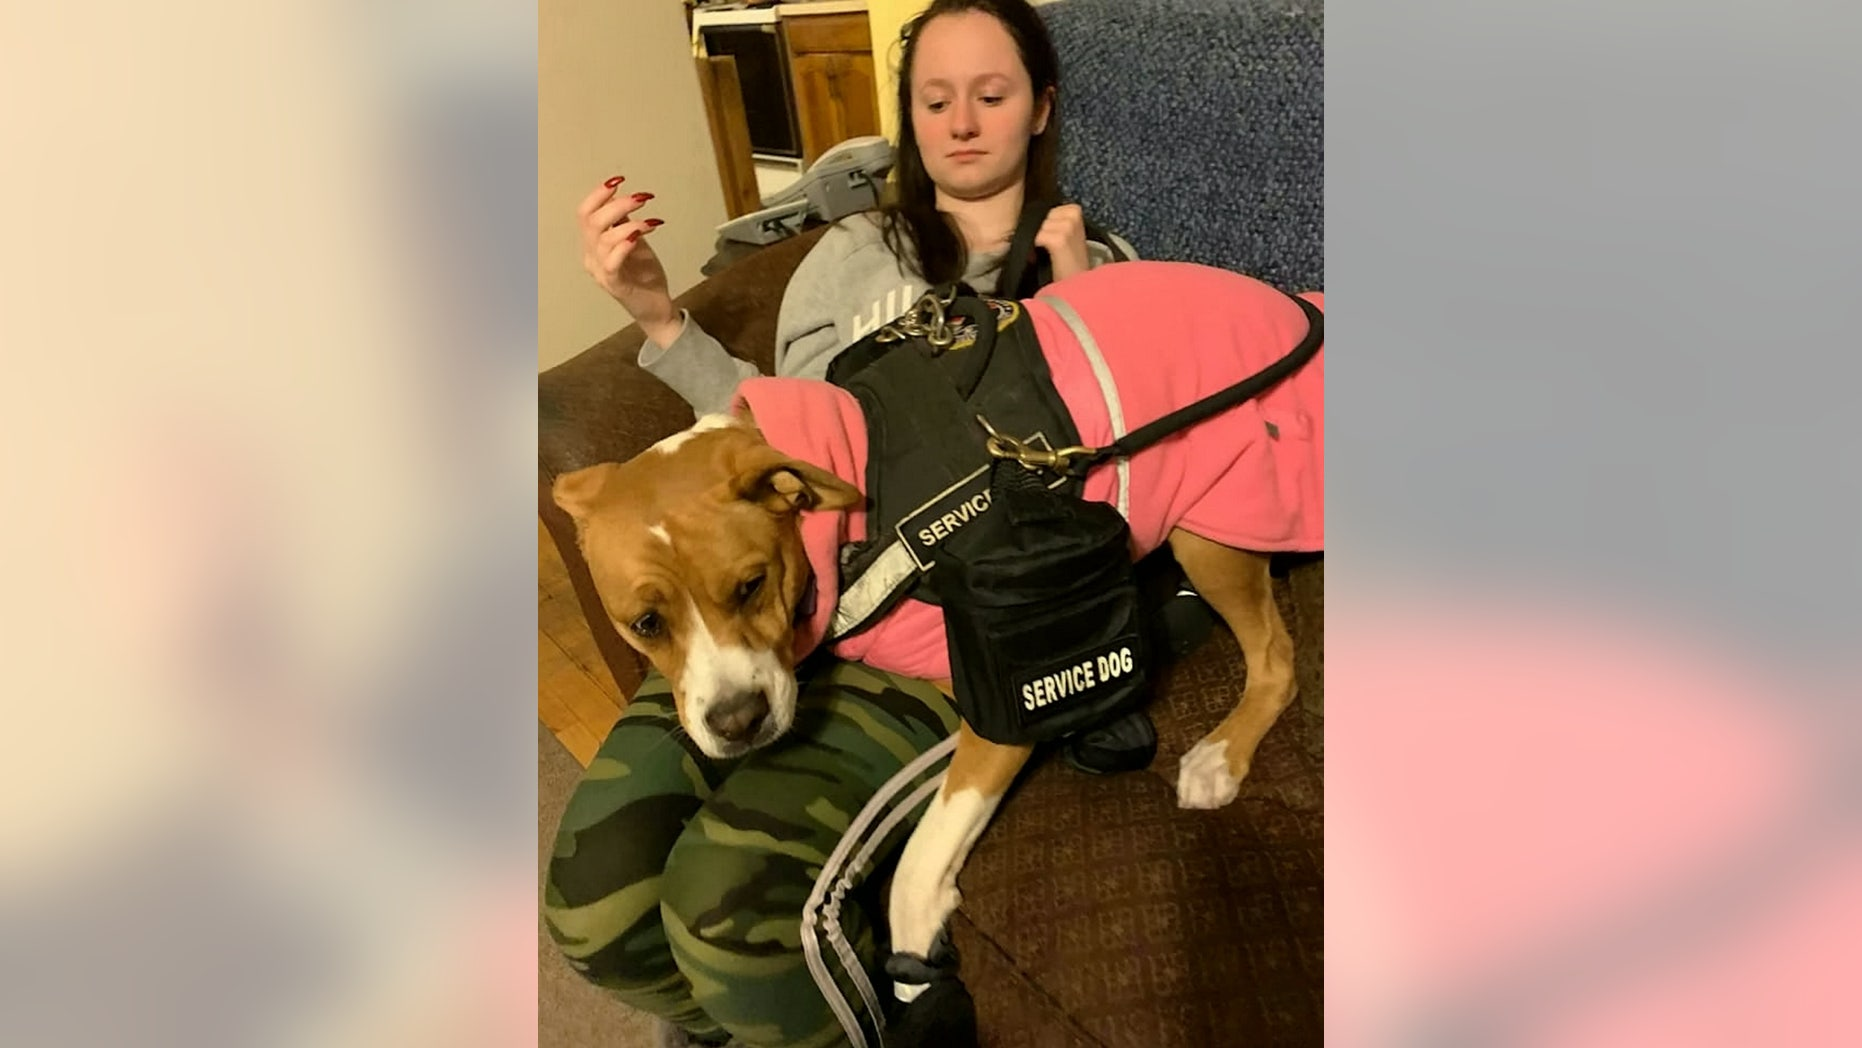 Baker's service dog can sniff out life-threatening odors, as well as alert to her an oncoming reaction.